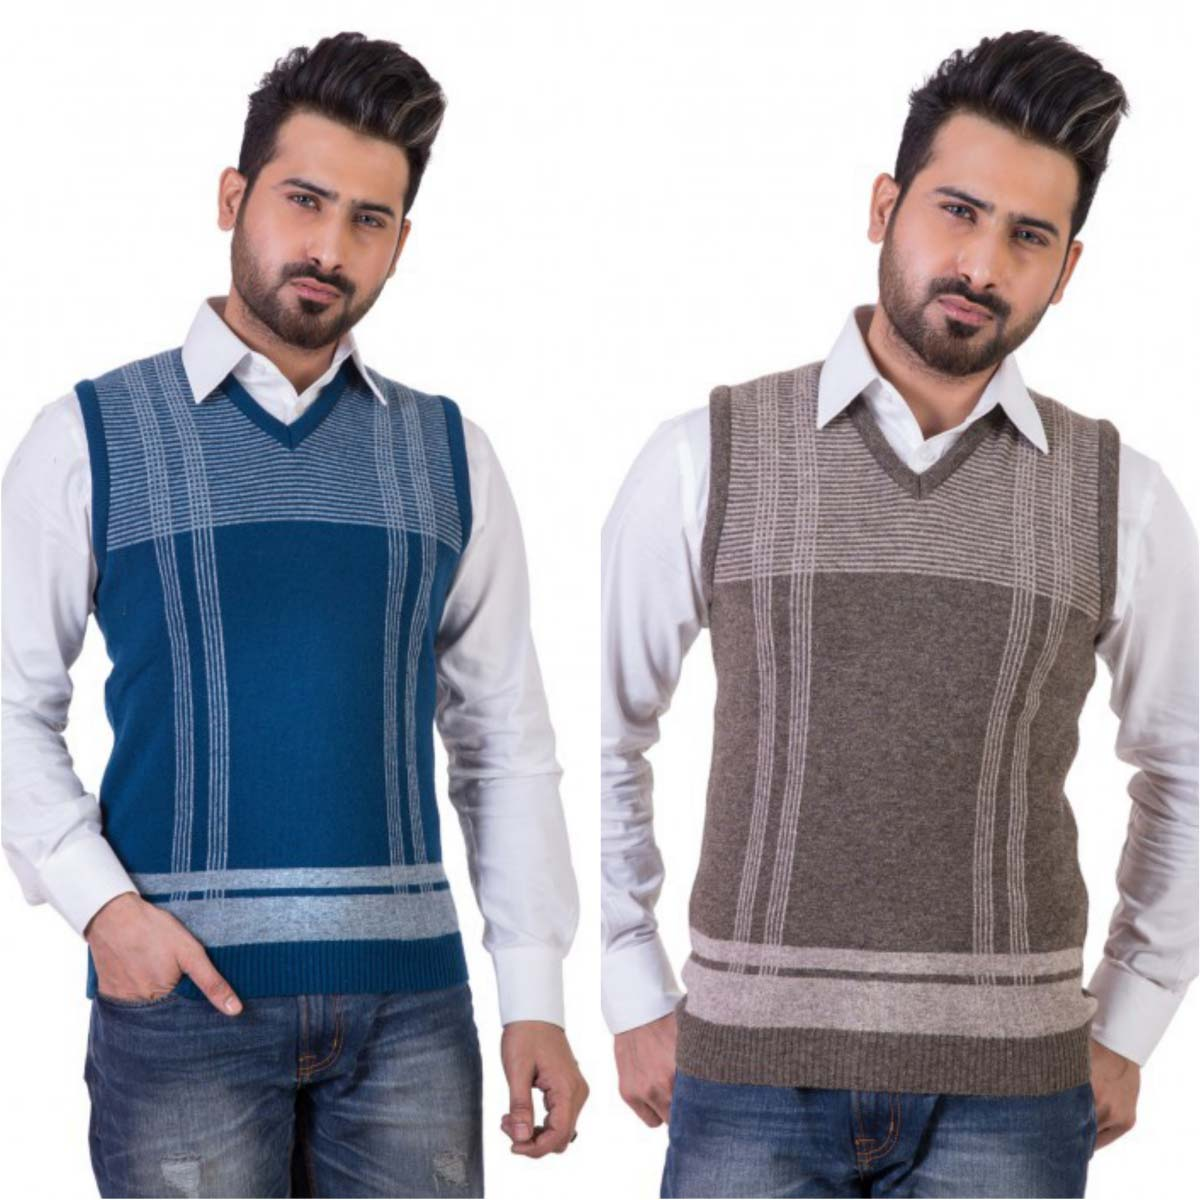 bonanza-winter-sweaters-and-outfits-2017-2018-for-men-8